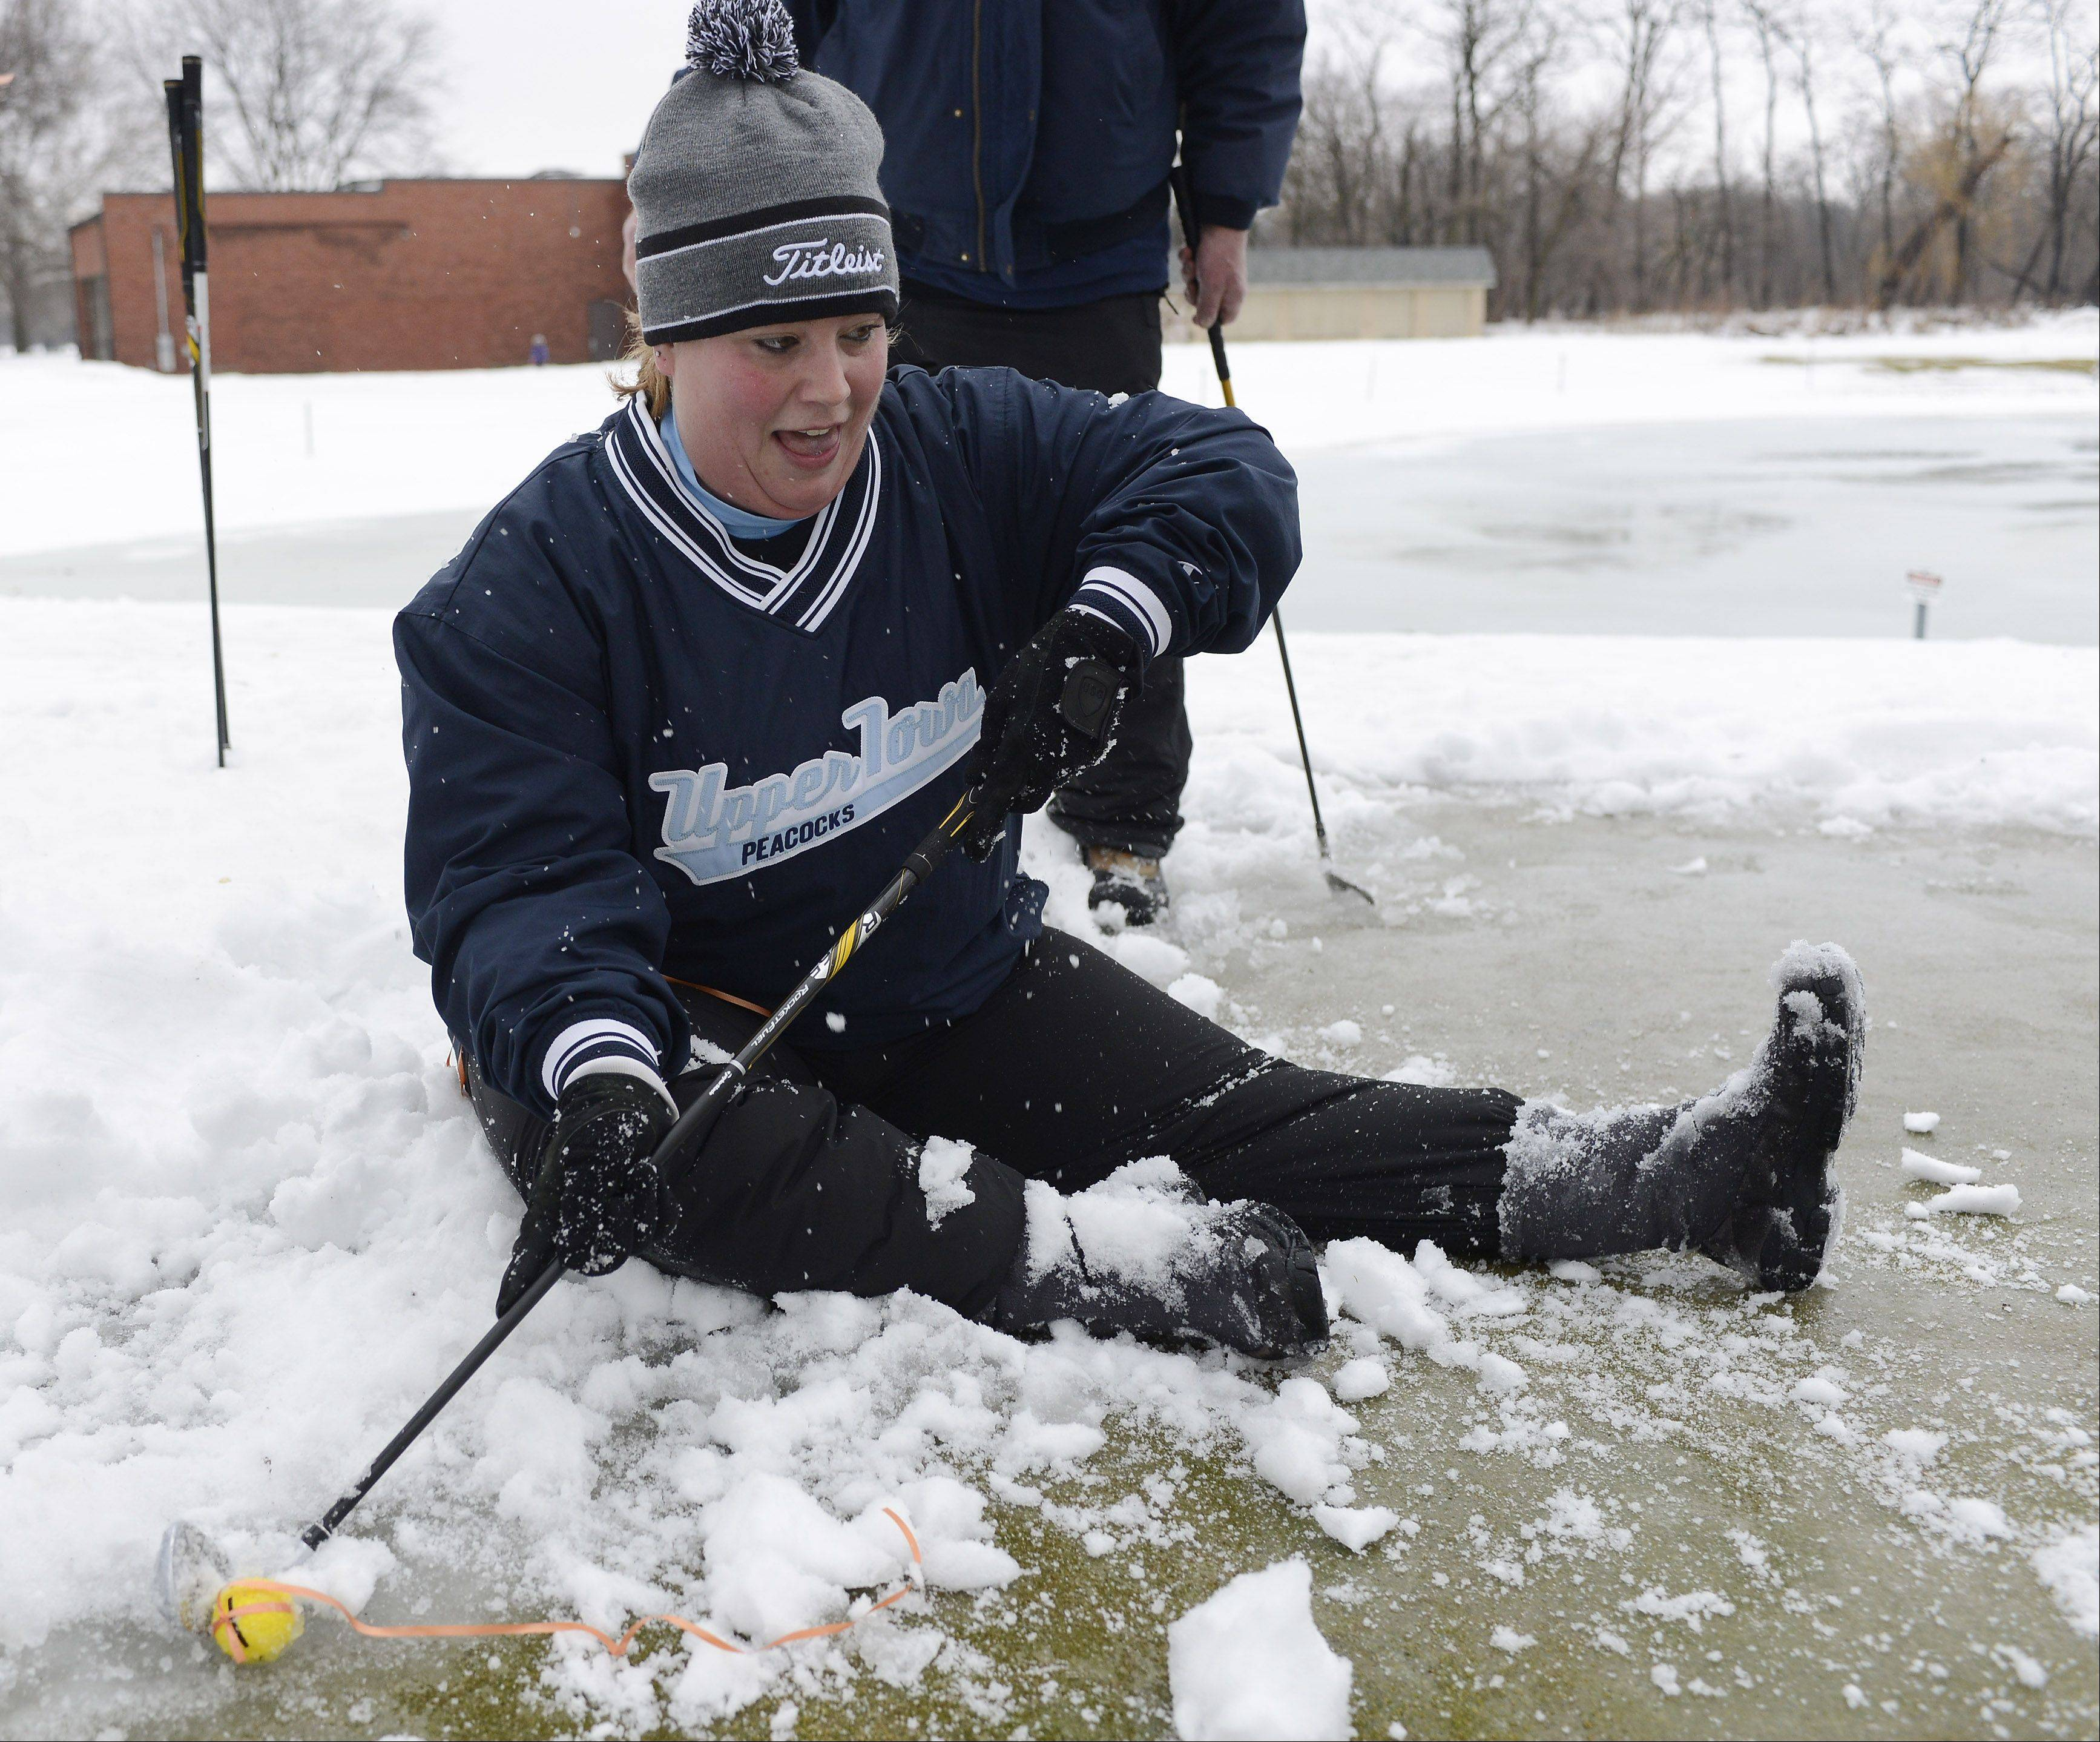 Jessica Lang of Mount Prospect, who got the lowest female score, tries to make her putt from a seated position after slipping on the icy green Saturday during the Chili Open at the Golf Center in Des Plaines.